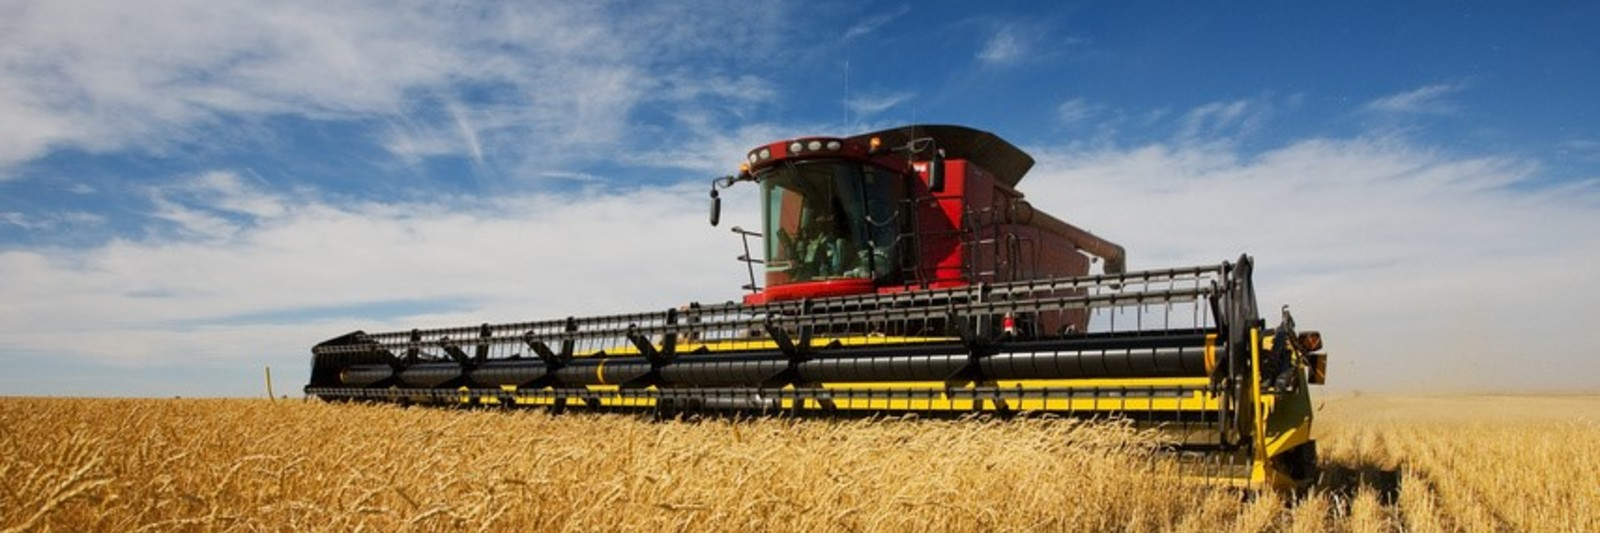 Combine-wheat-Cropped.jpg